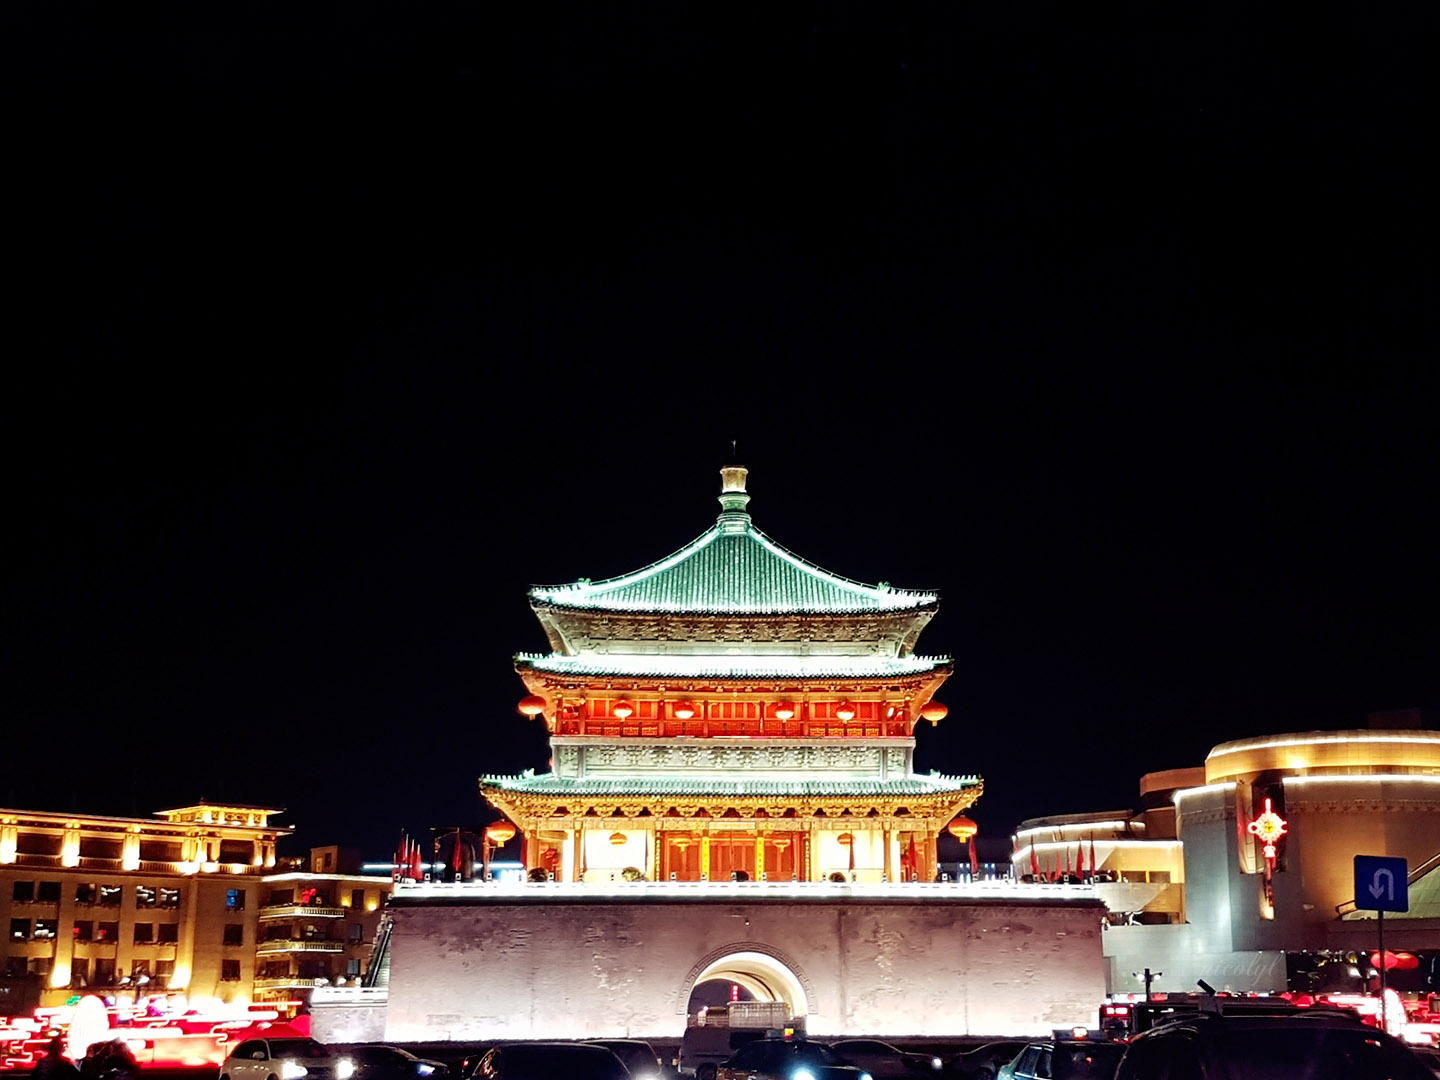 xian bell tower night